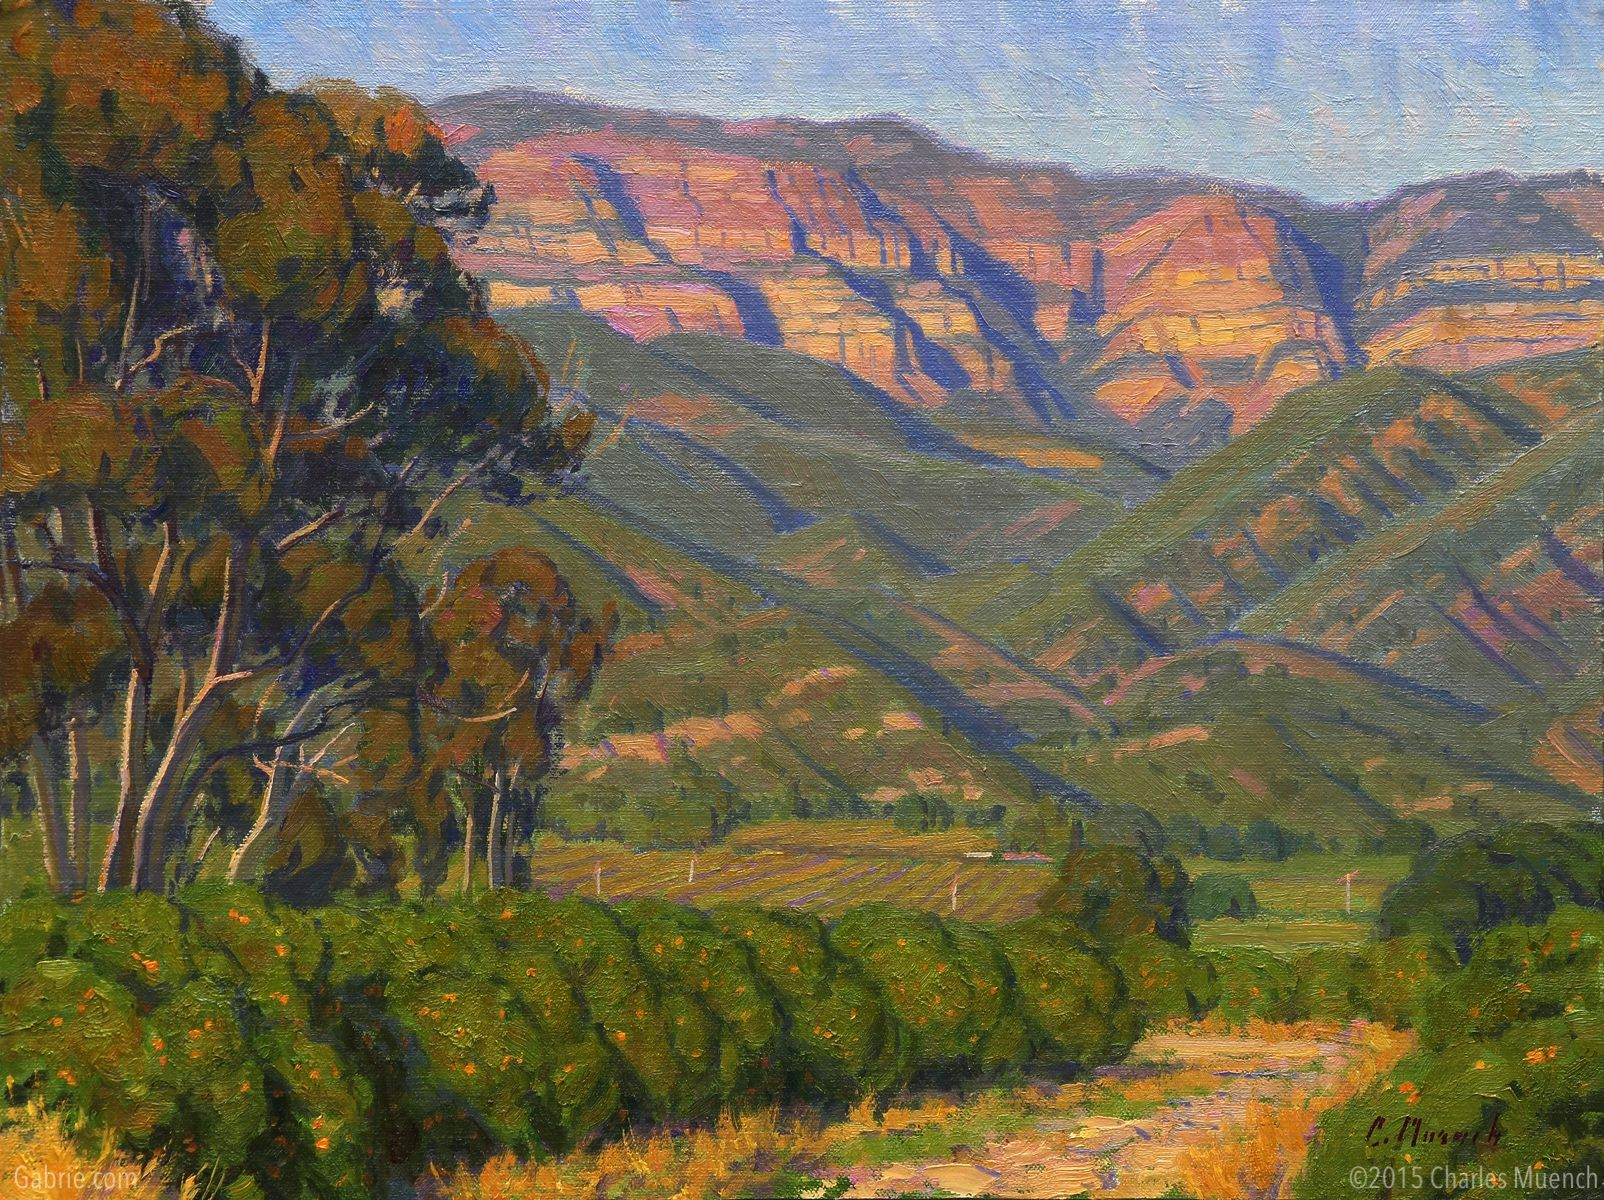 """Approaching Twilight—Ojai"" by Charles Muench; 12""x16""; Oil on Linen #CaliforniaArt #EnPleinAir #LandscapeArt"